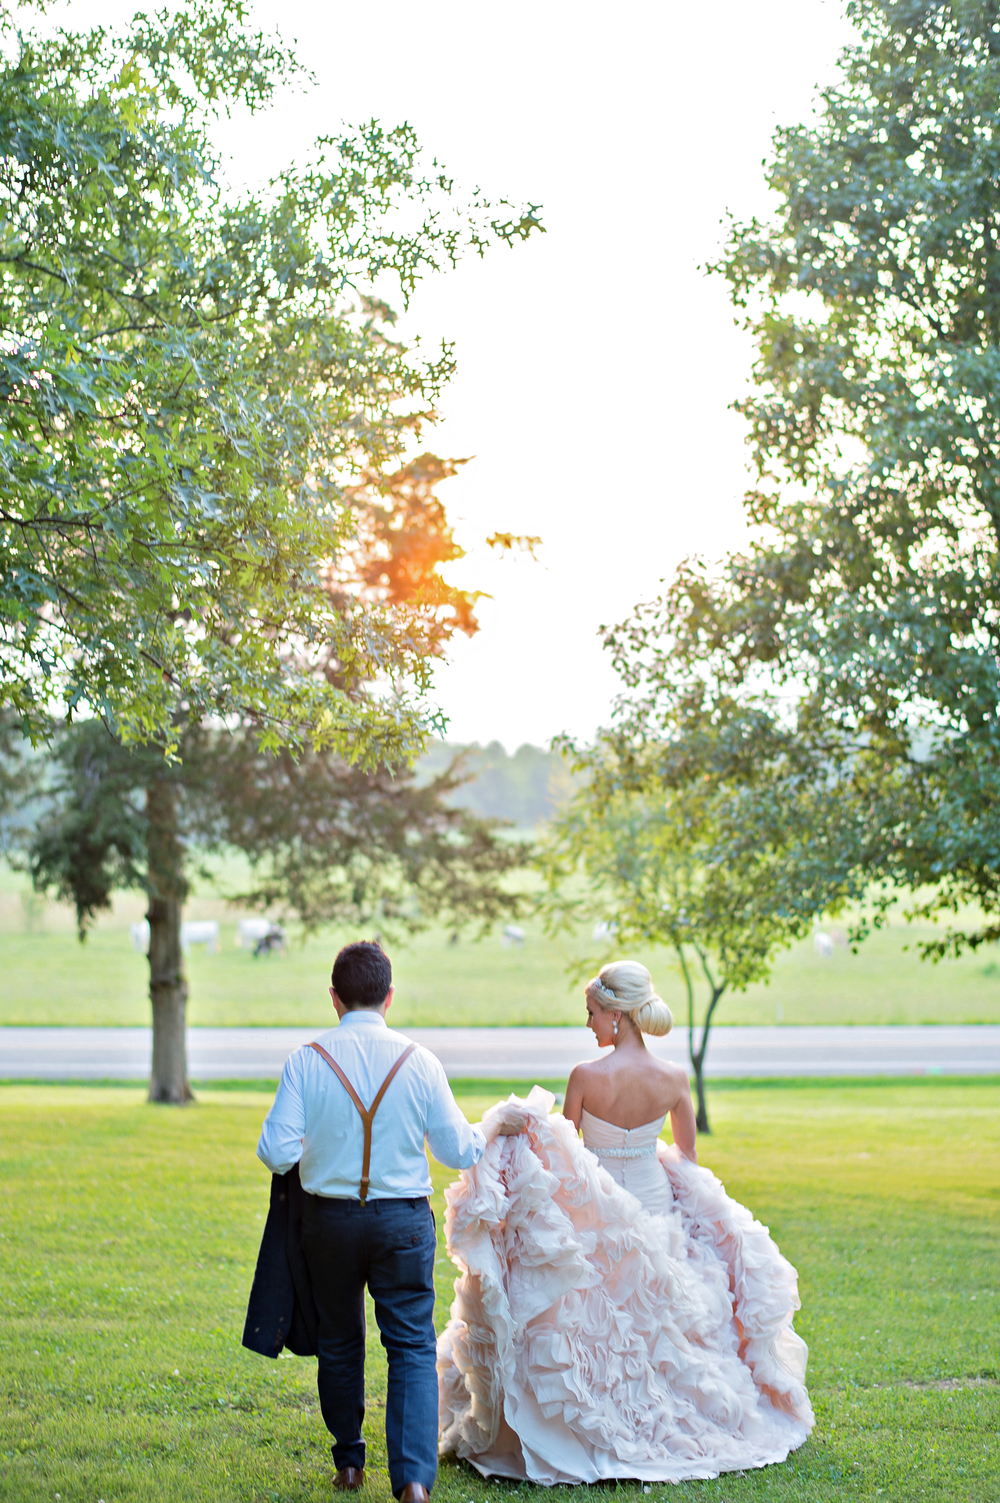 kristenweaver.com | Lilac Gardens Wedding at Arrington Vineyards in Nashville, Tennessee | Destination Wedding Photographer | Kristen Weaver Photography